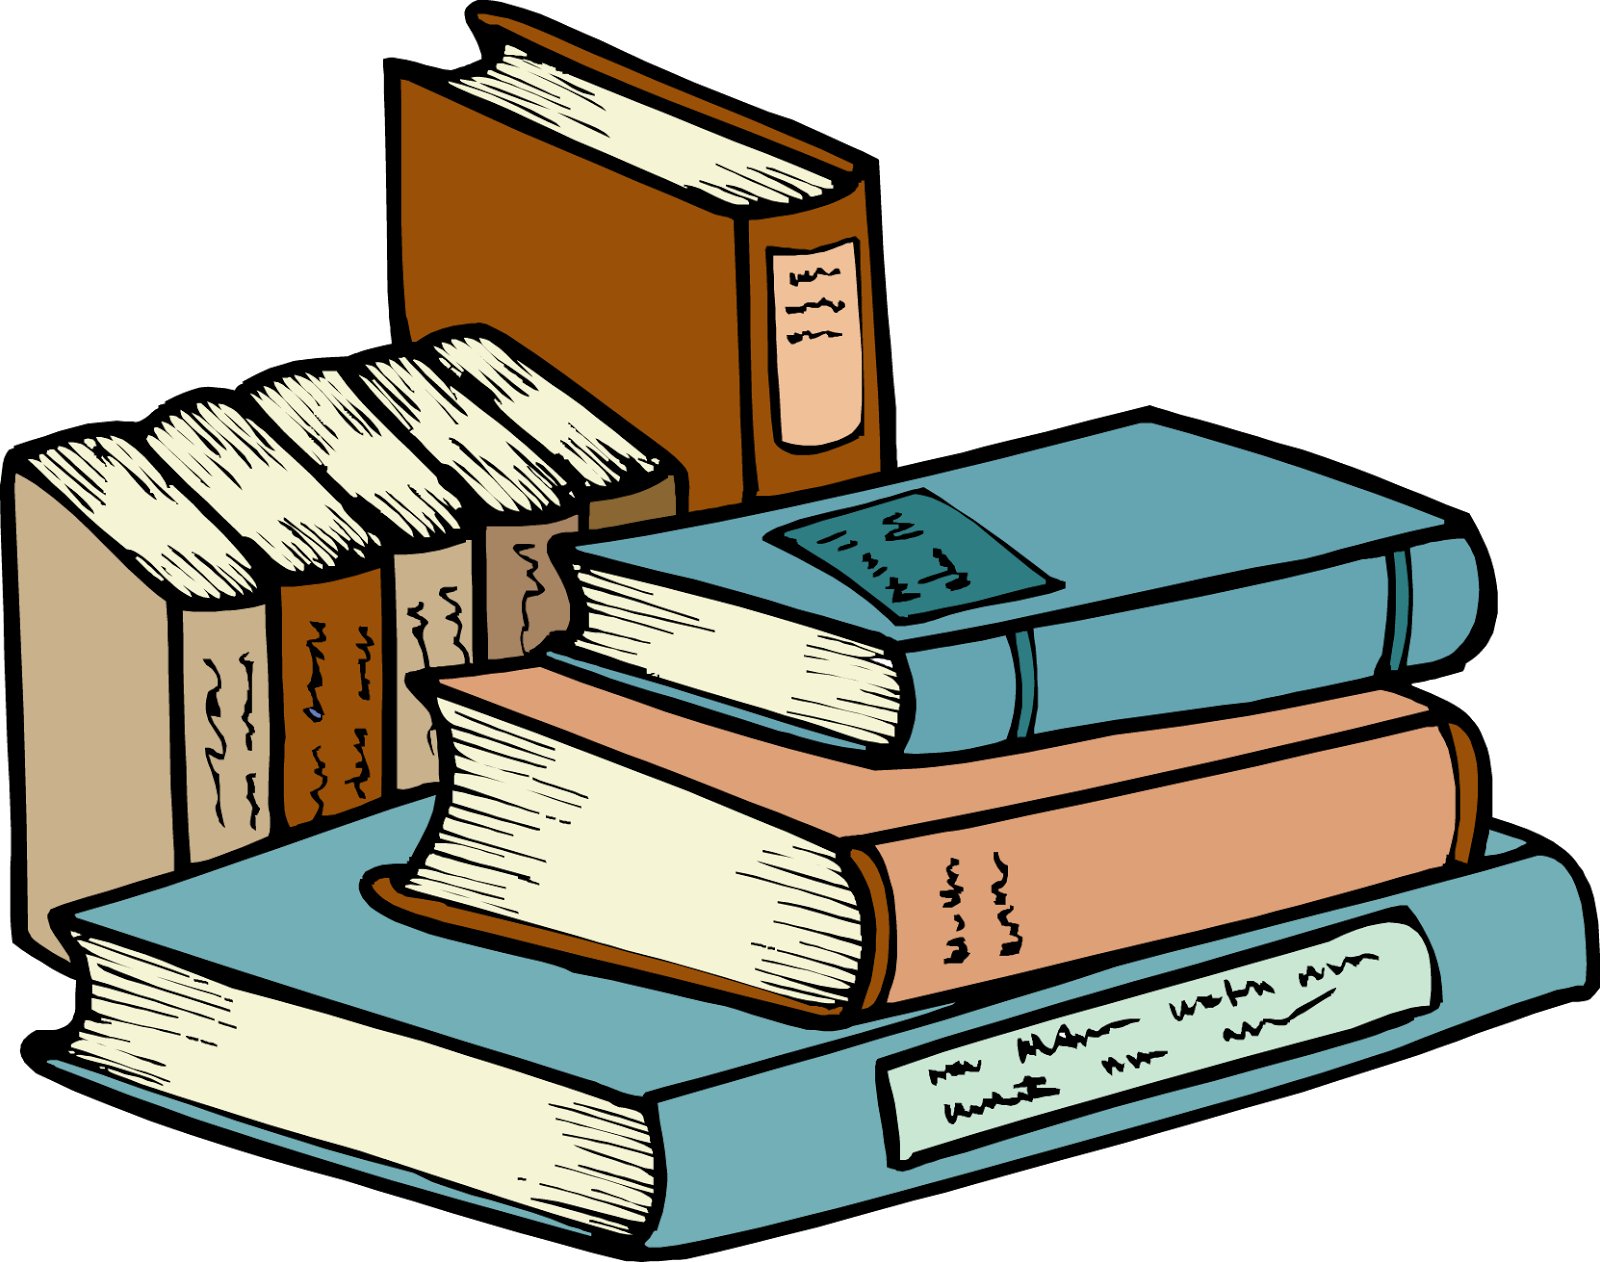 clipart for books - photo #22